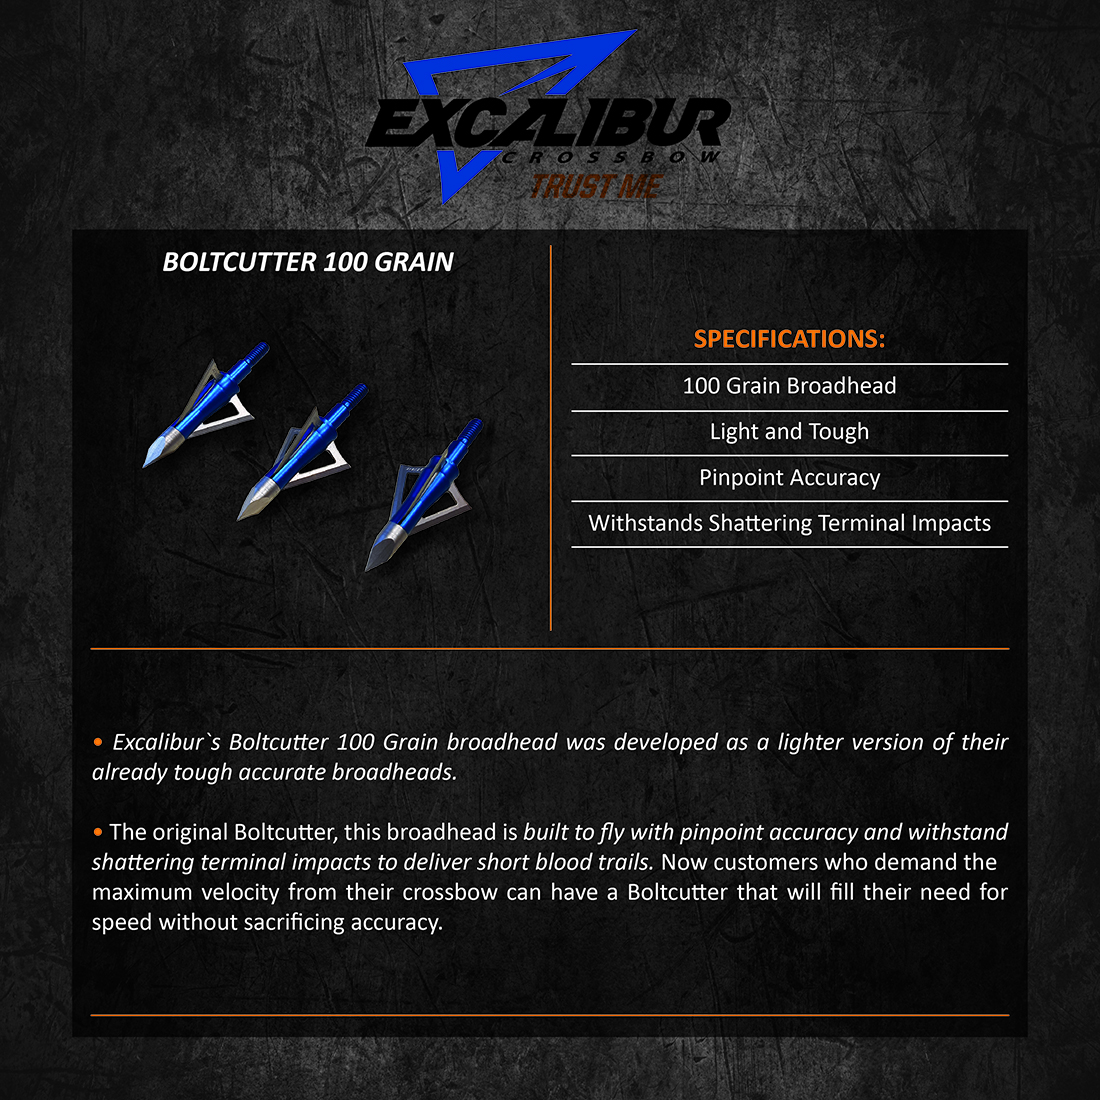 Excalibur_BoltCutter_100Grain_Product_Description